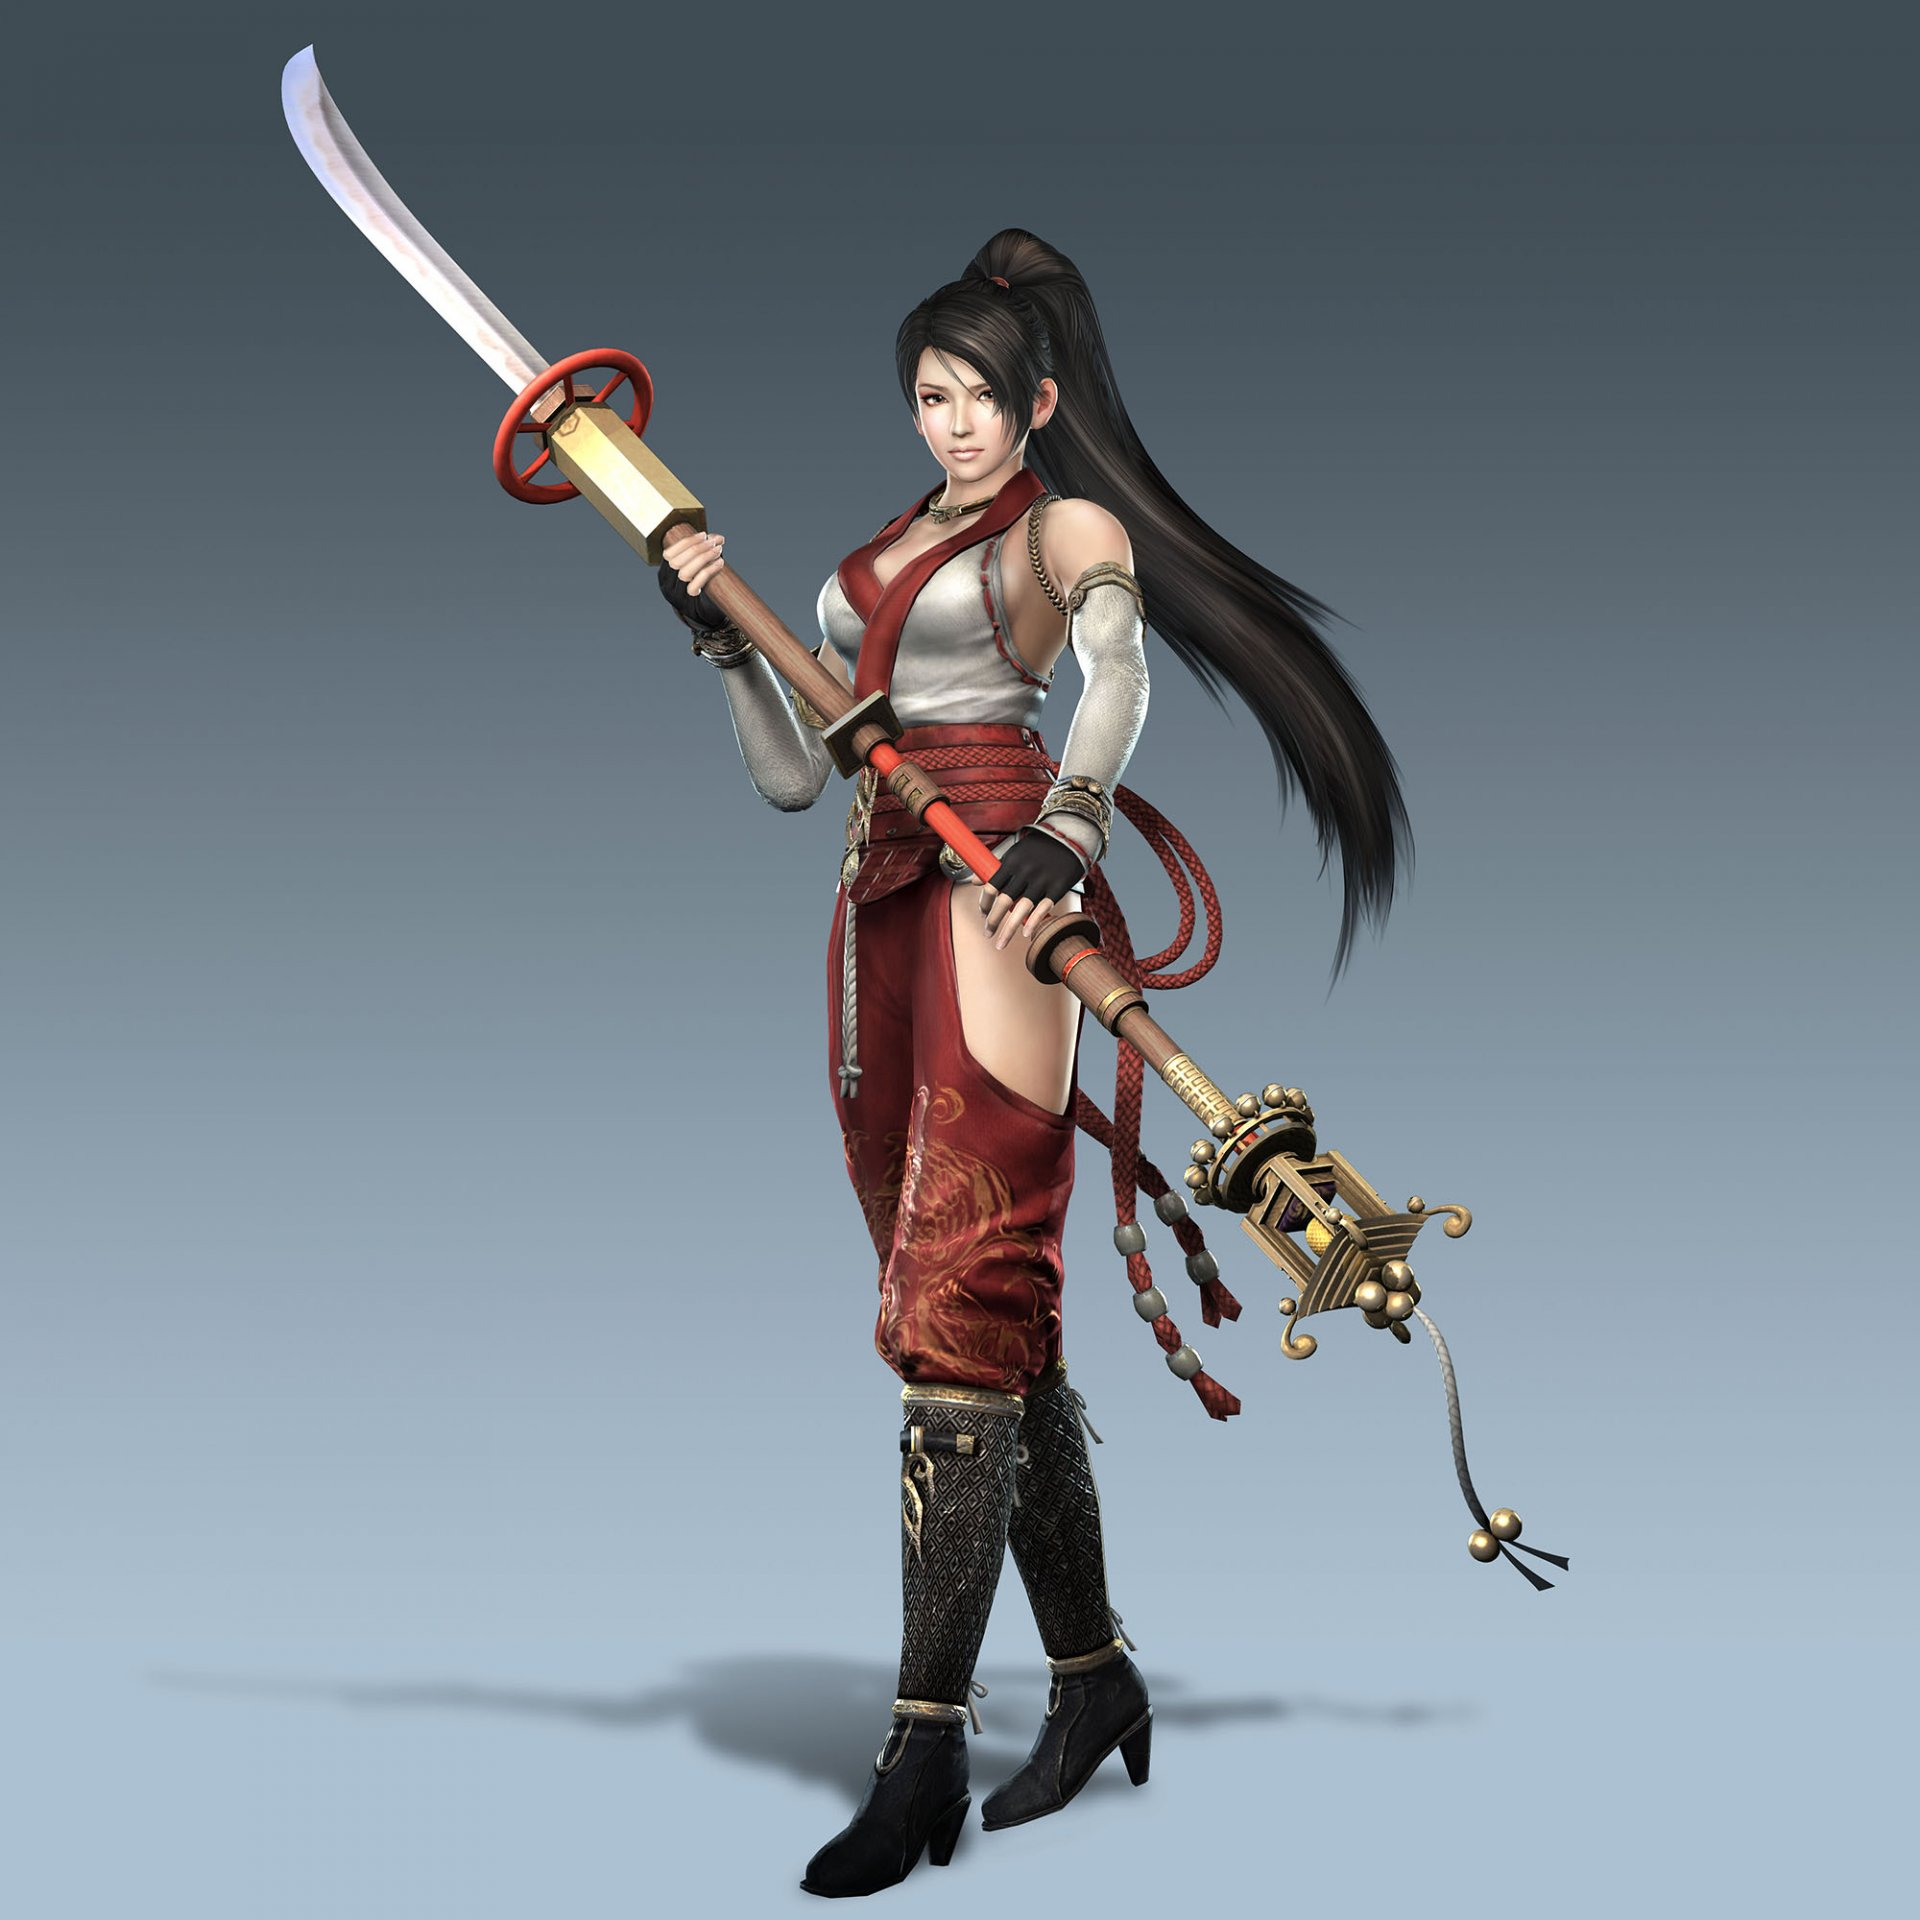 Game Warrior Orochi 3 Untuk Pc: Warriors Orochi 3 Ultimate Wallpaper